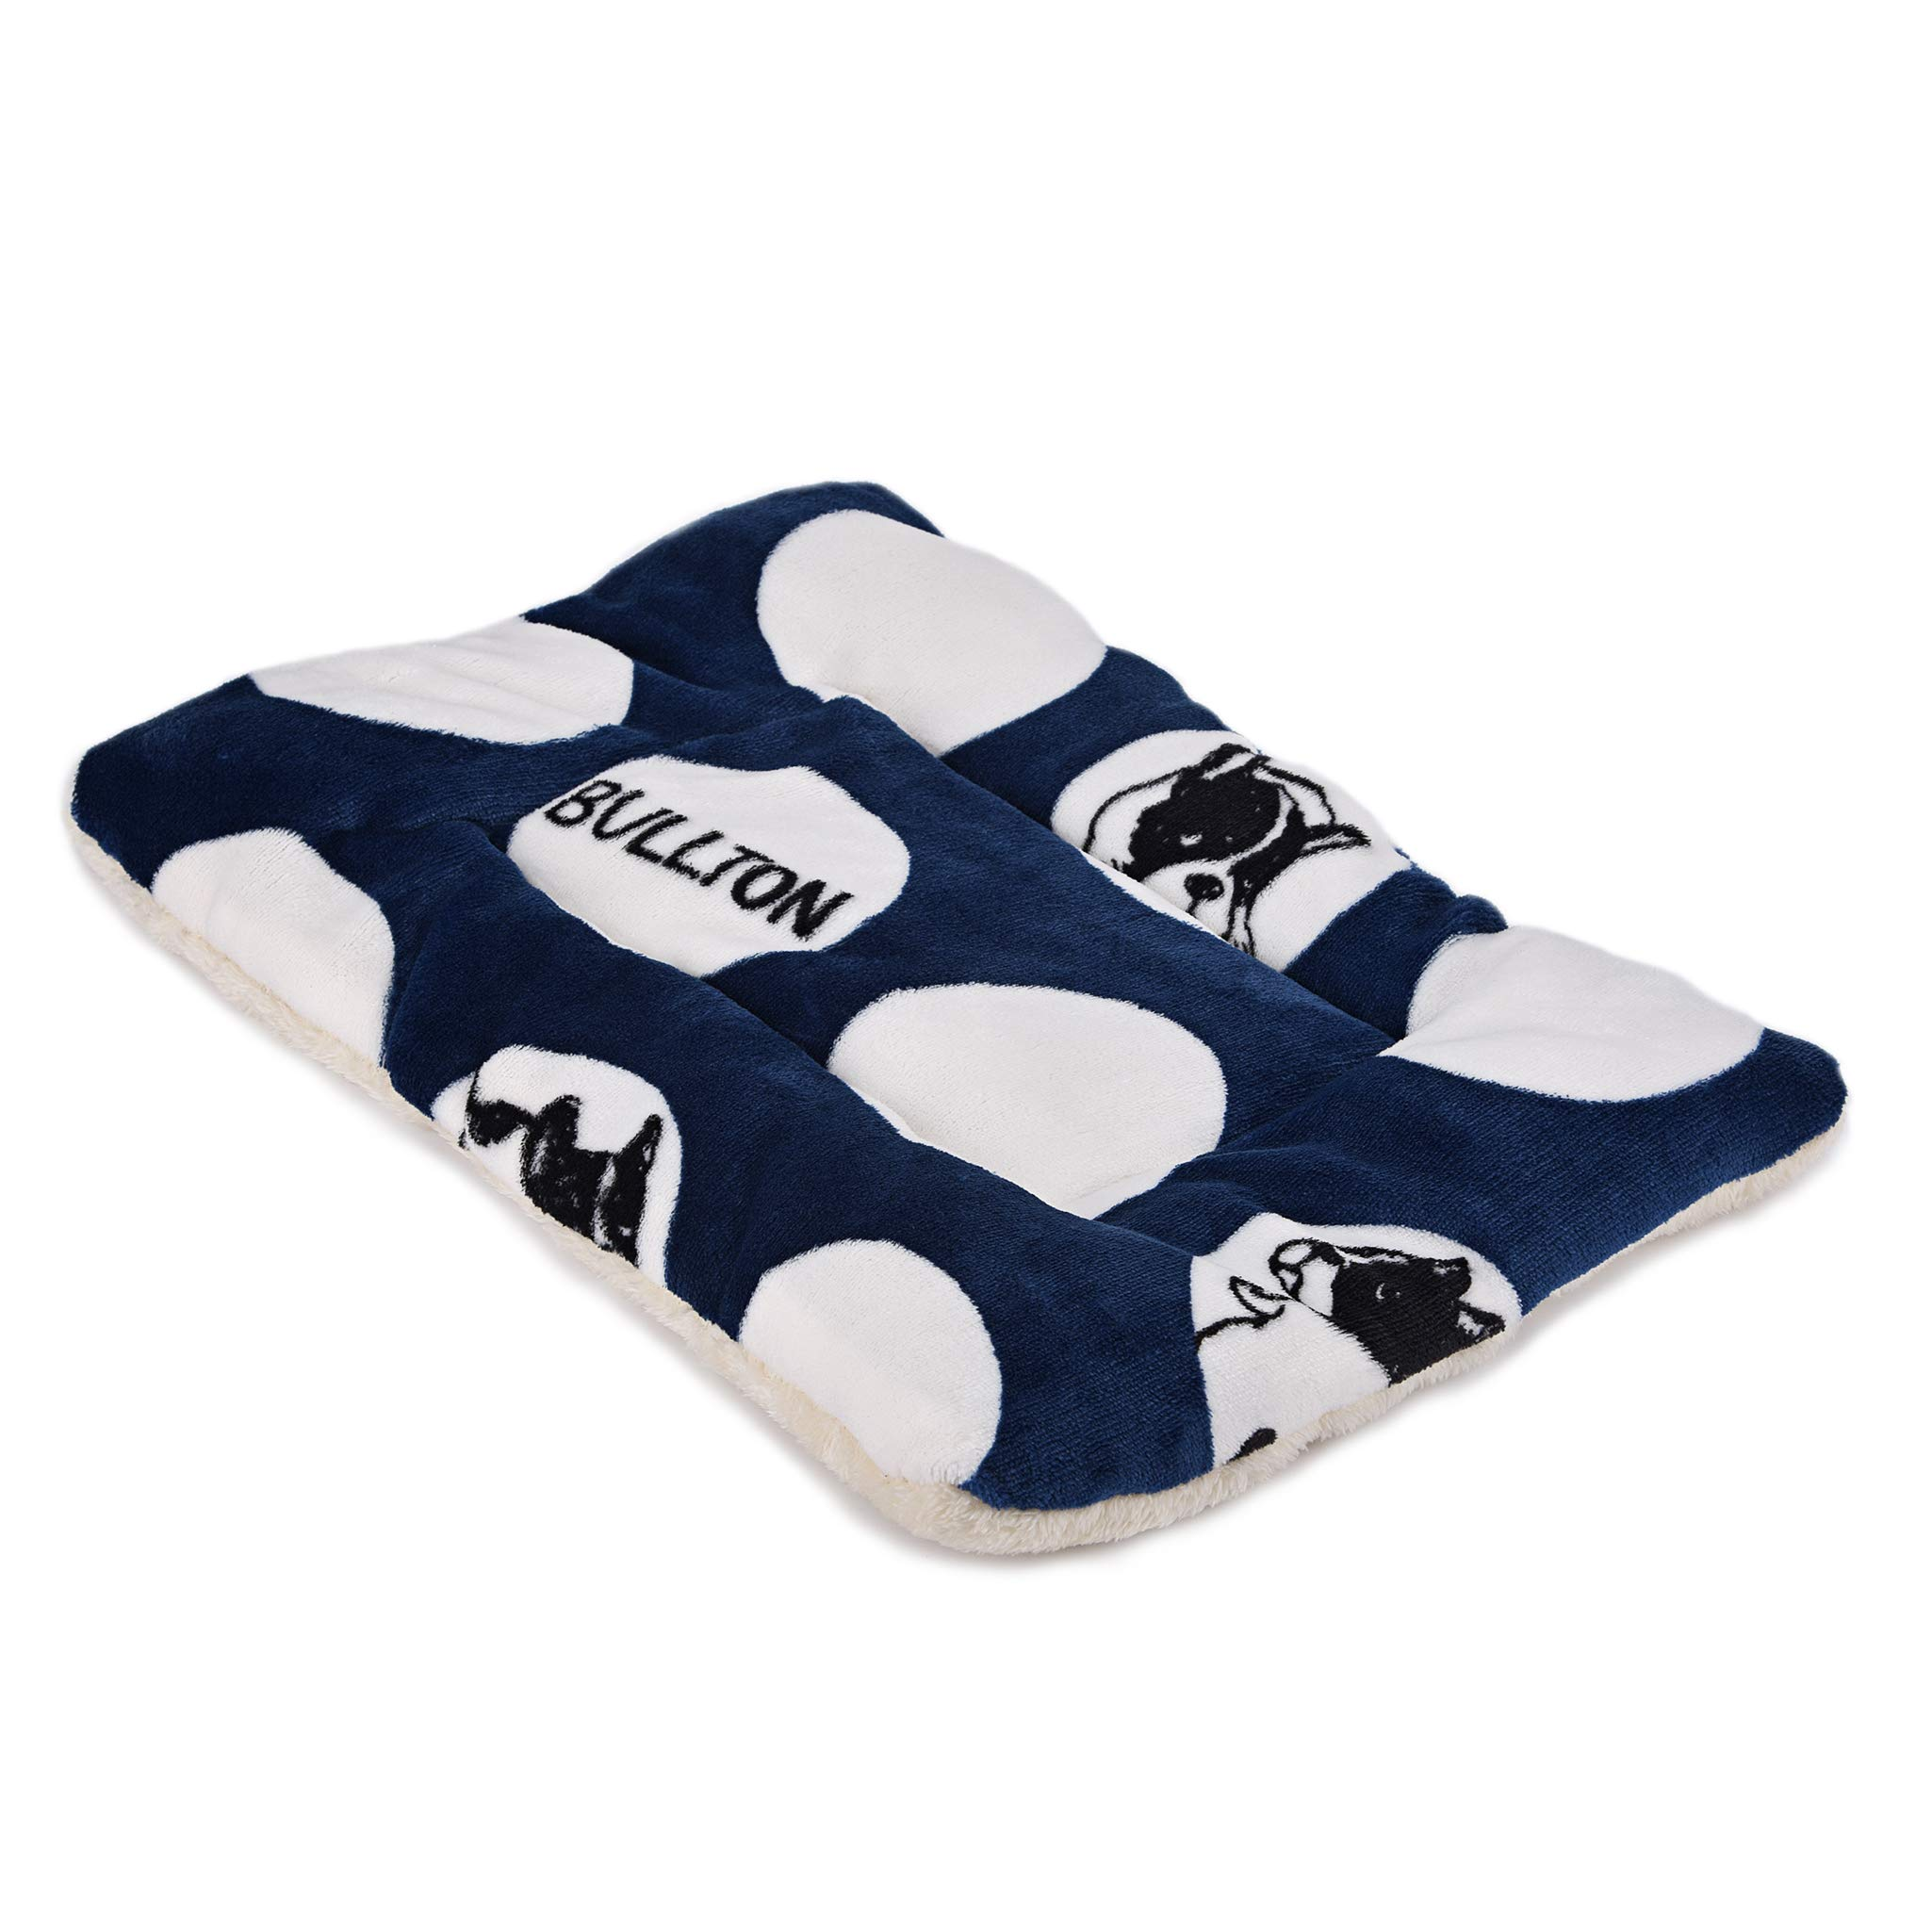 SEKAYISORE Double-Sided Flannel Pet Sleep Mat, Super Soft Dog and Cat Bed Mat with Three-Dimensional Prints, Machine Washable Dog Crate Kennel Pad, Dark Blue S